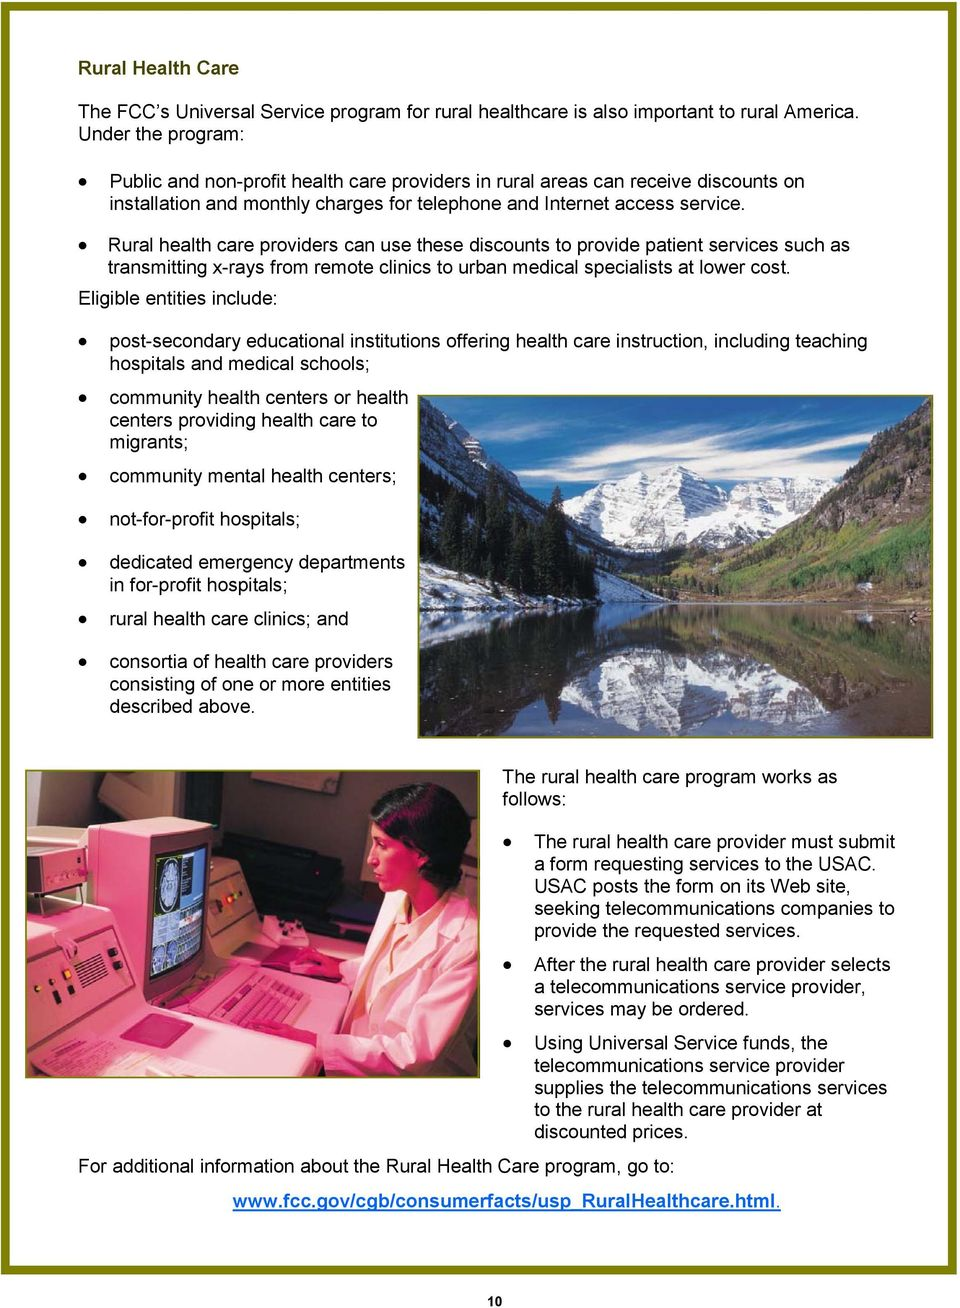 Rural health care providers can use these discounts to provide patient services such as transmitting x-rays from remote clinics to urban medical specialists at lower cost.